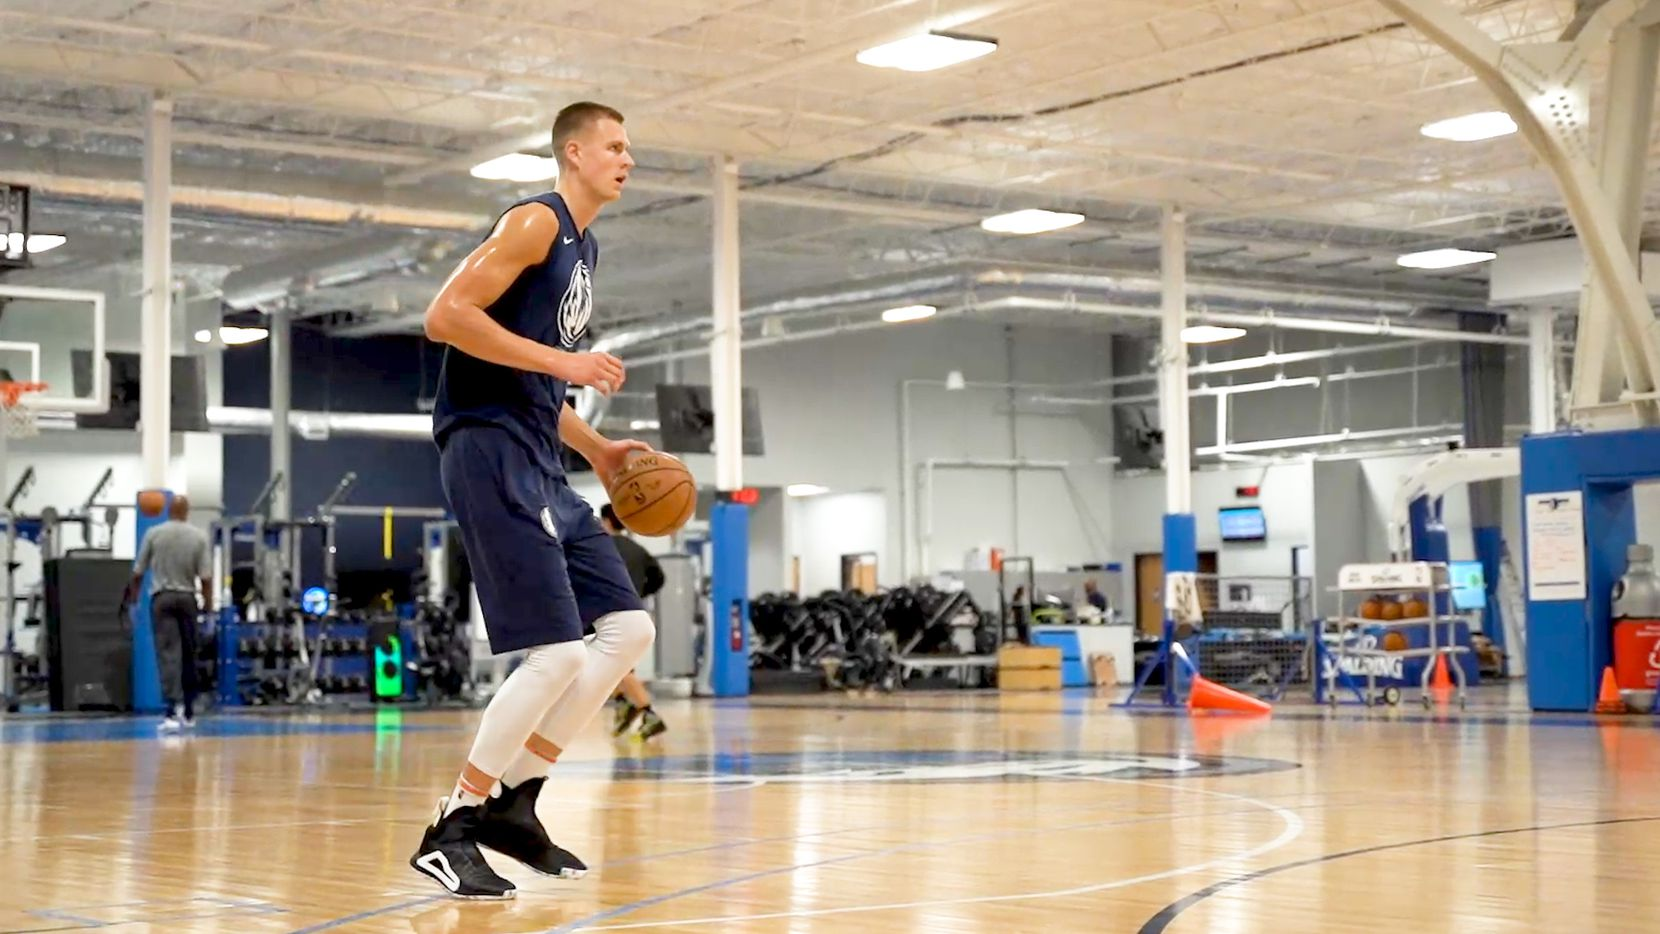 Dallas Mavericks power forward Kristaps Porzingis shoots baskets during the first mandatory workout on July 1, 2020. Porzingis and others played at the team's practice facility for the first time since the coronavirus pandemic started in Dallas, Tex.